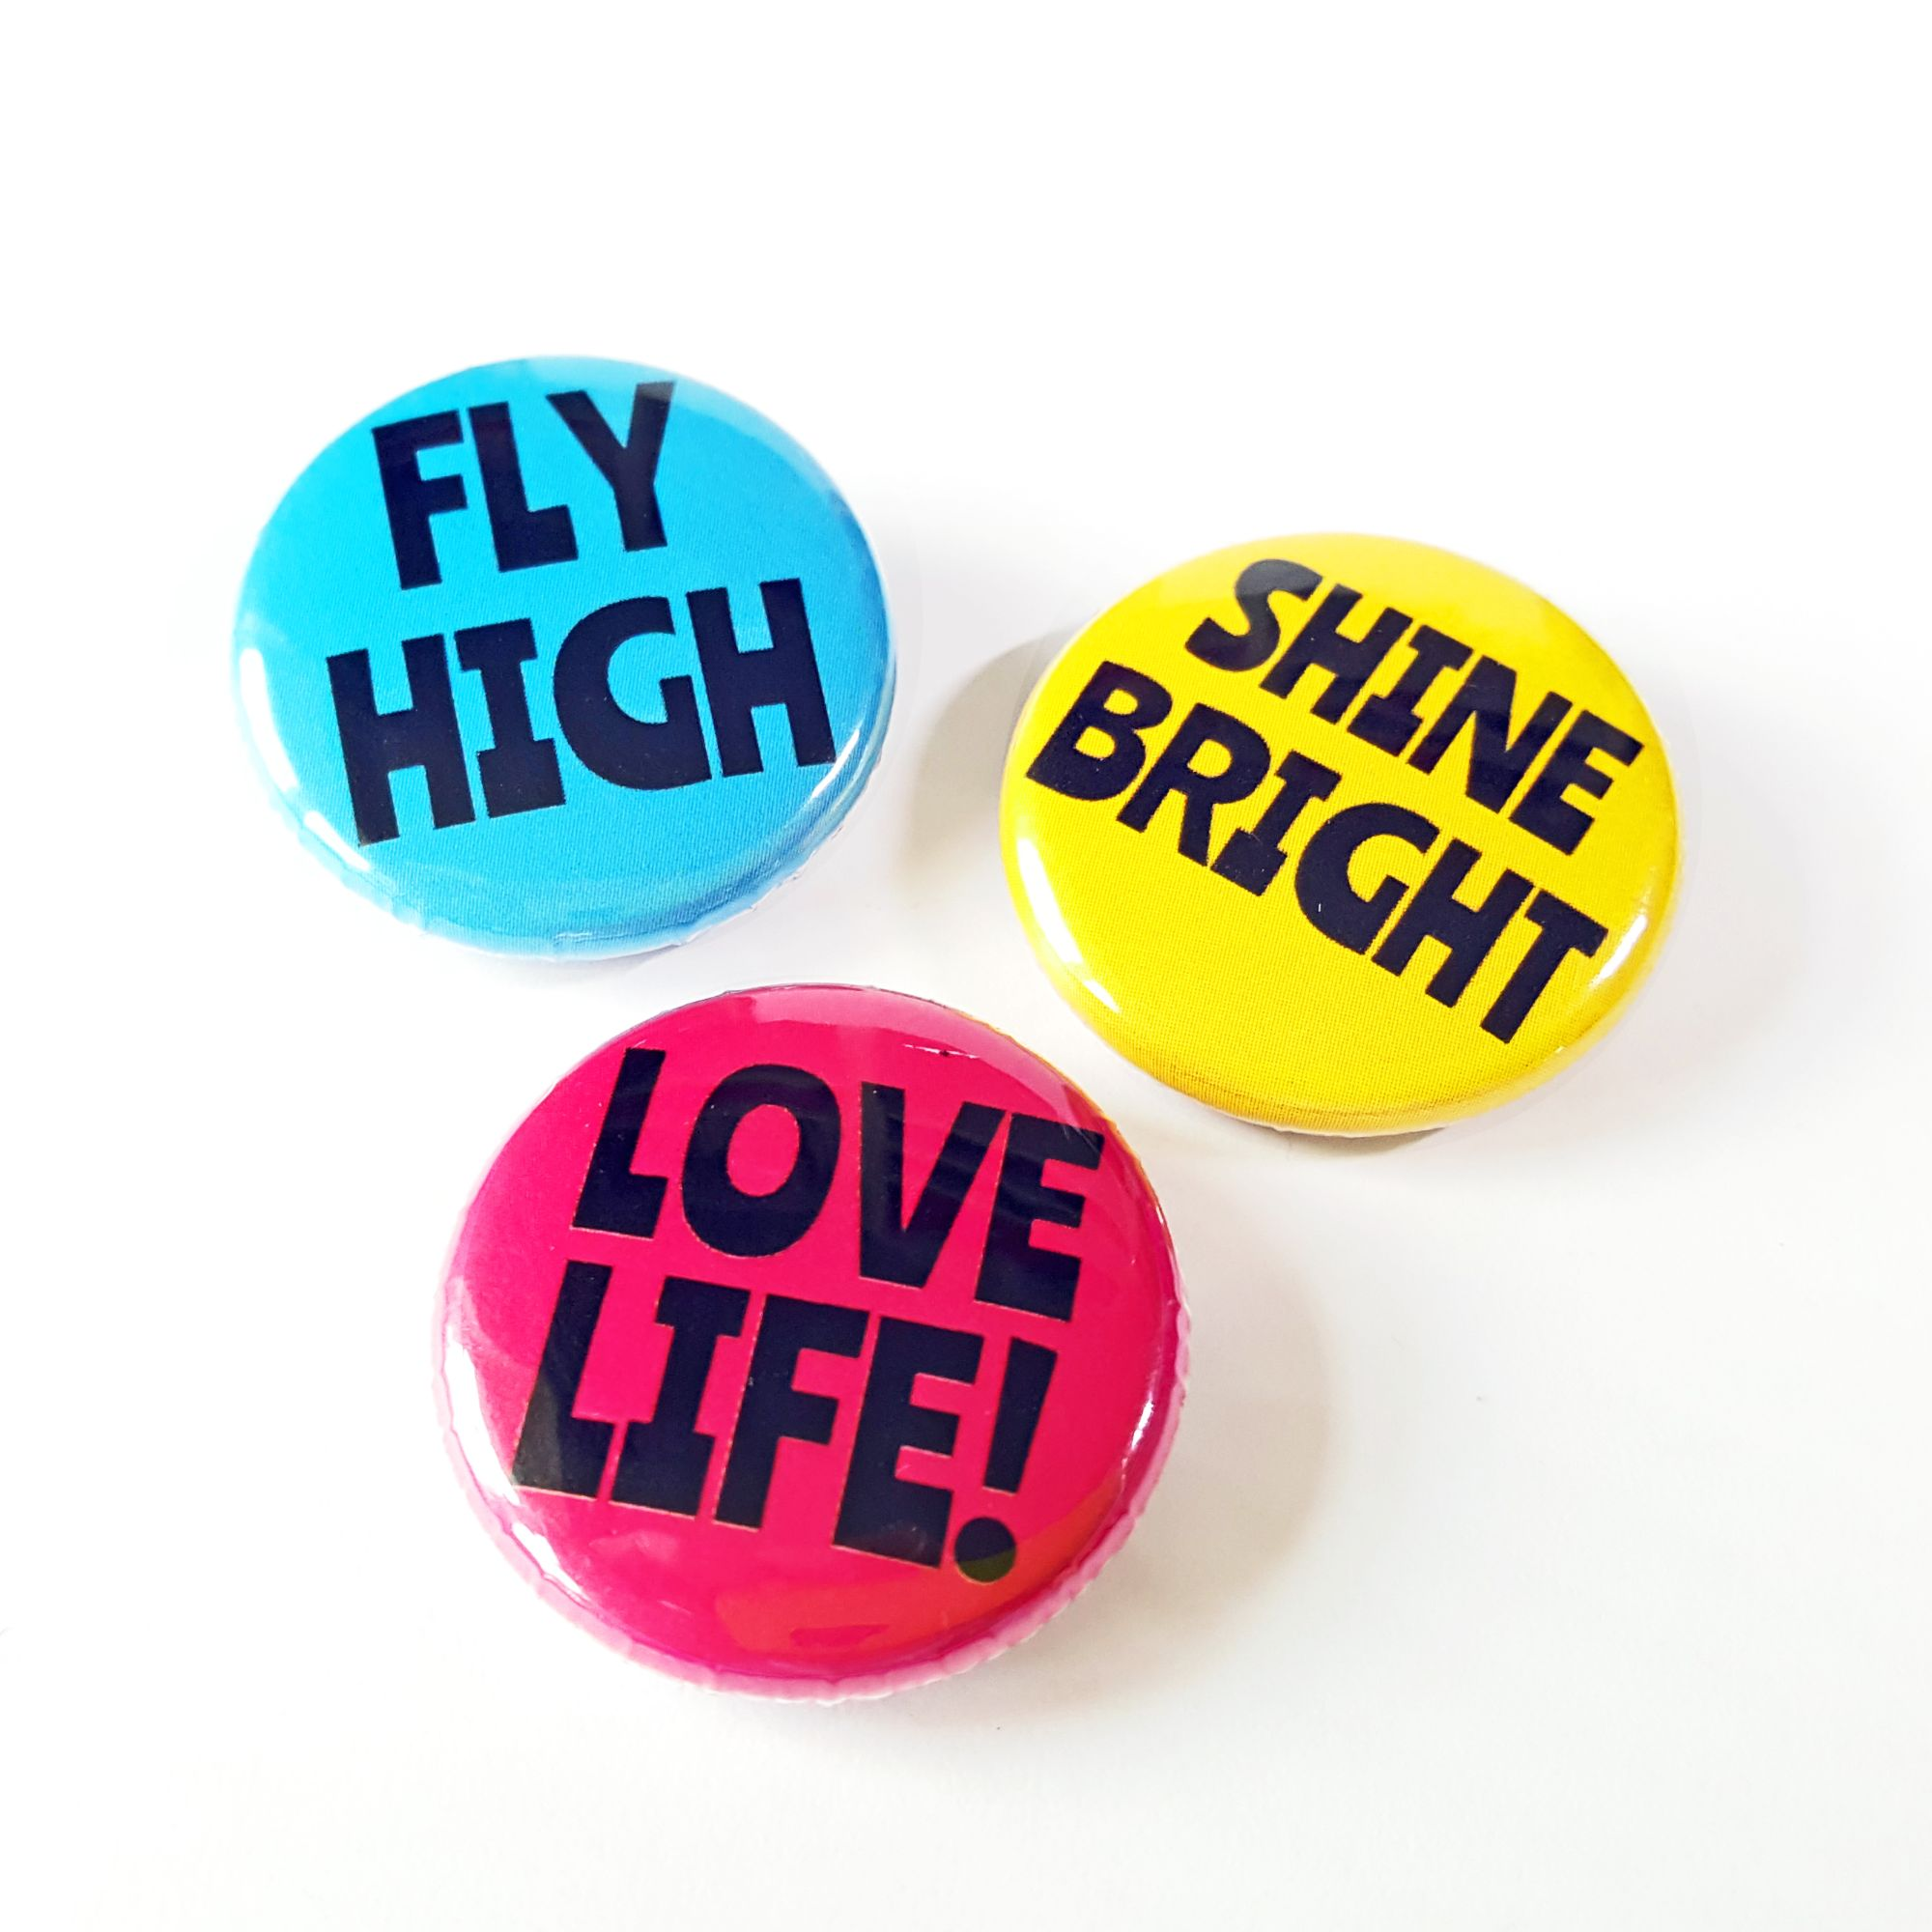 Fly, High, Shine Bright, Love Life Badge Set